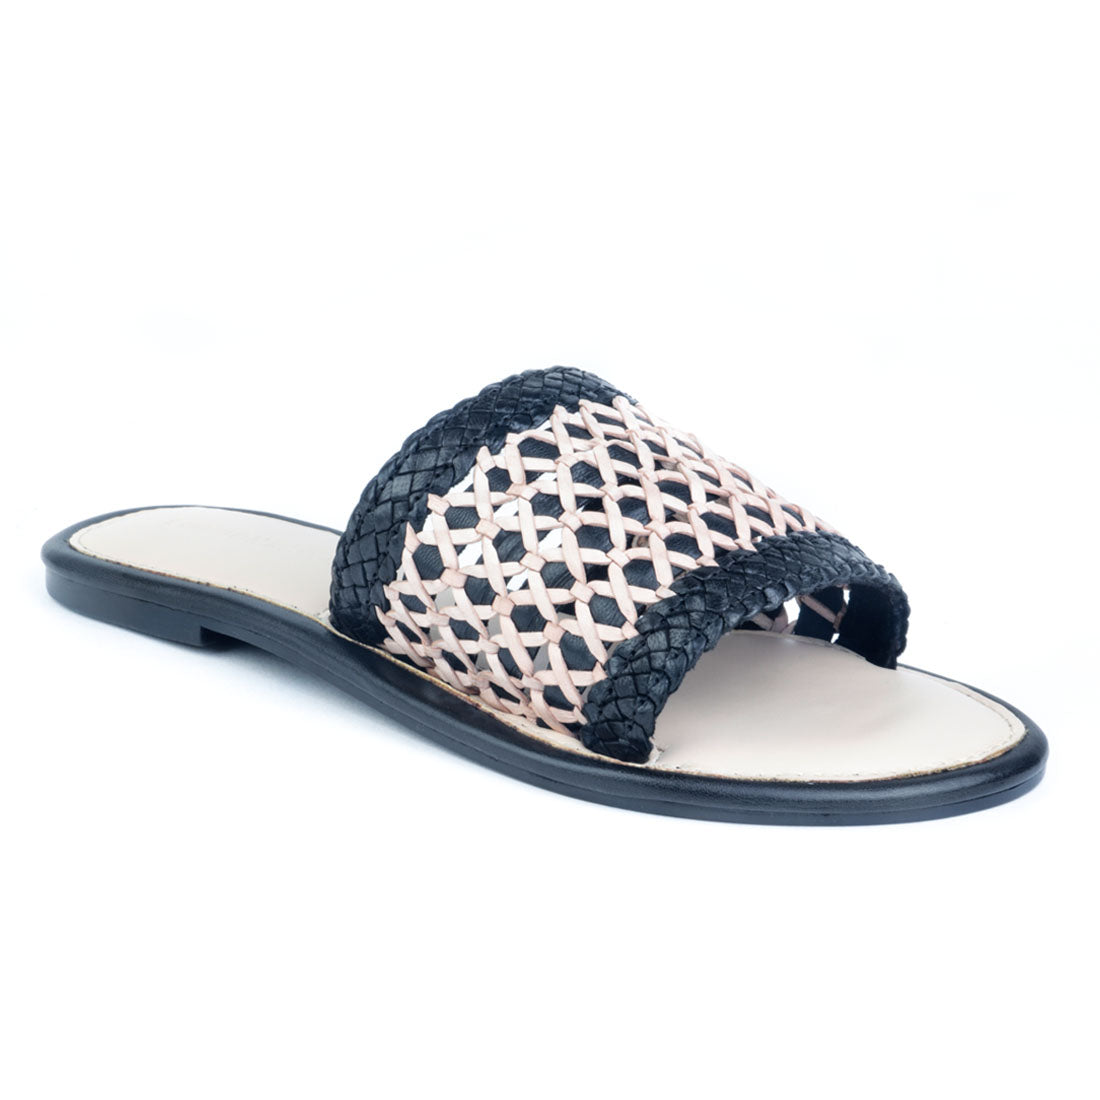 Nude and Black Woven Slip-On Flat